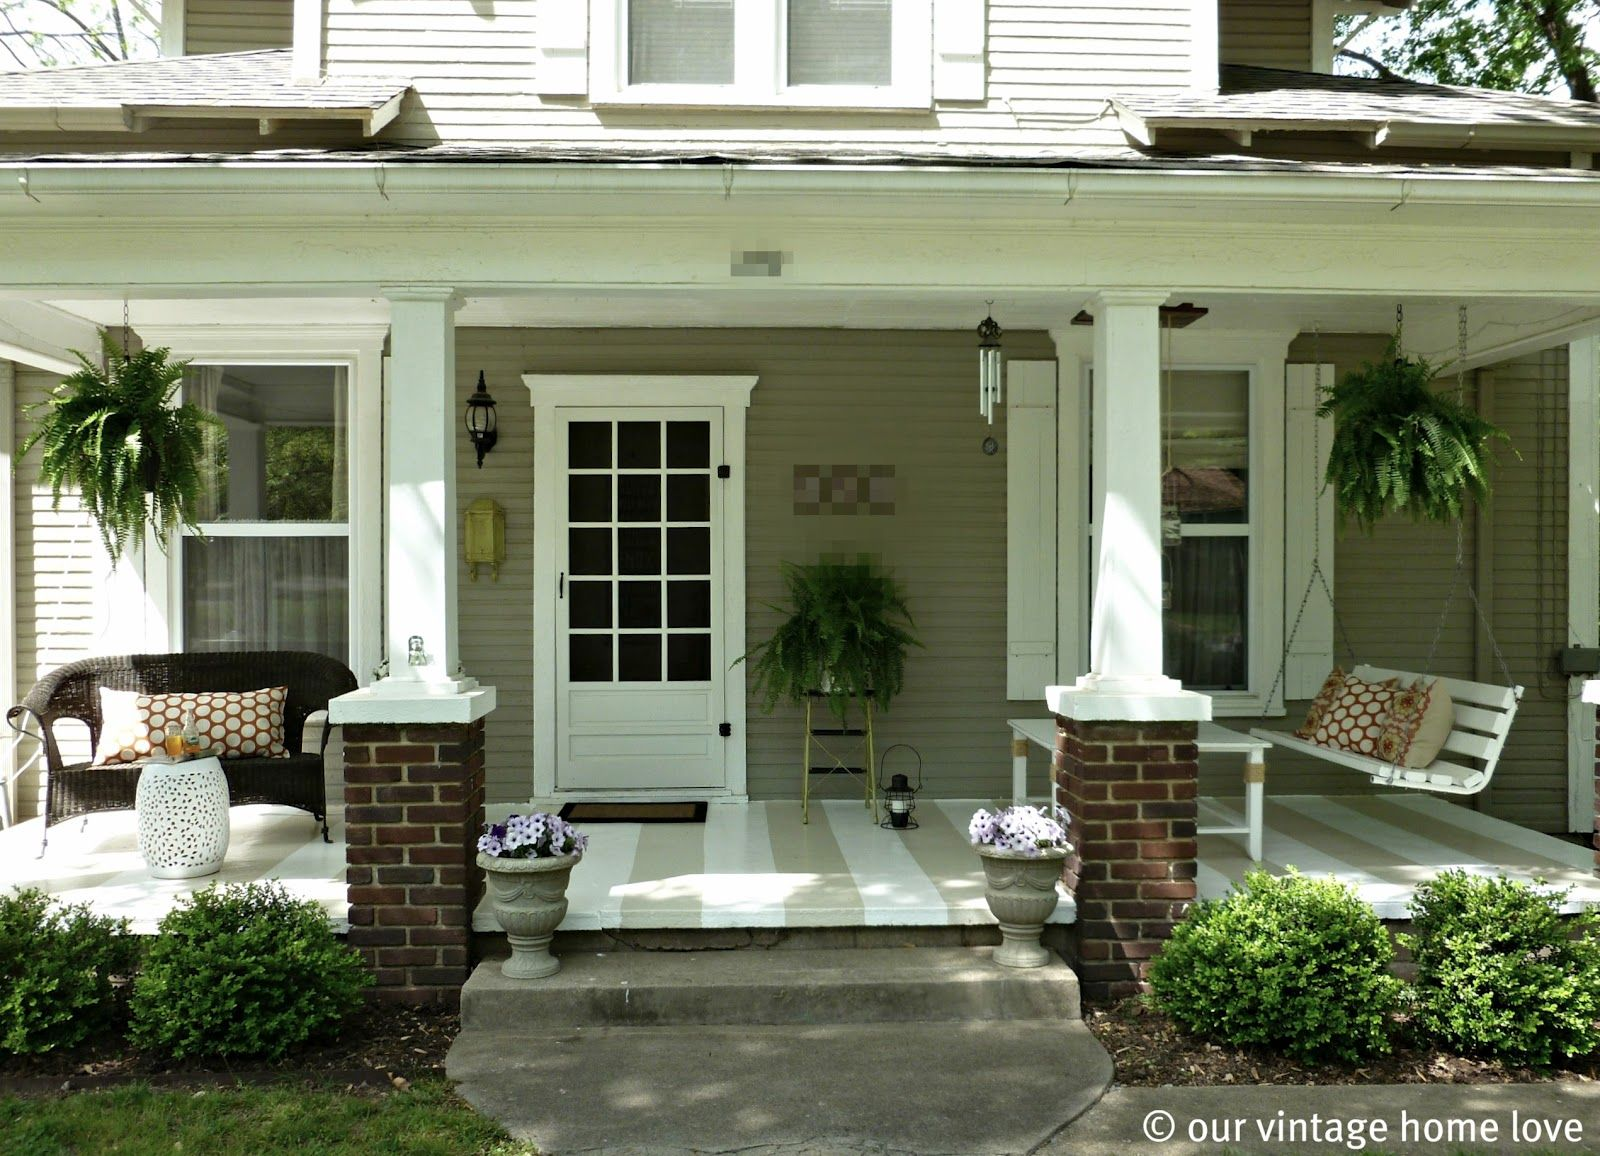 Nice Front Porch Decorating Ideas | Our Vintage Home Love: Spring/Summer Porch  Ideas